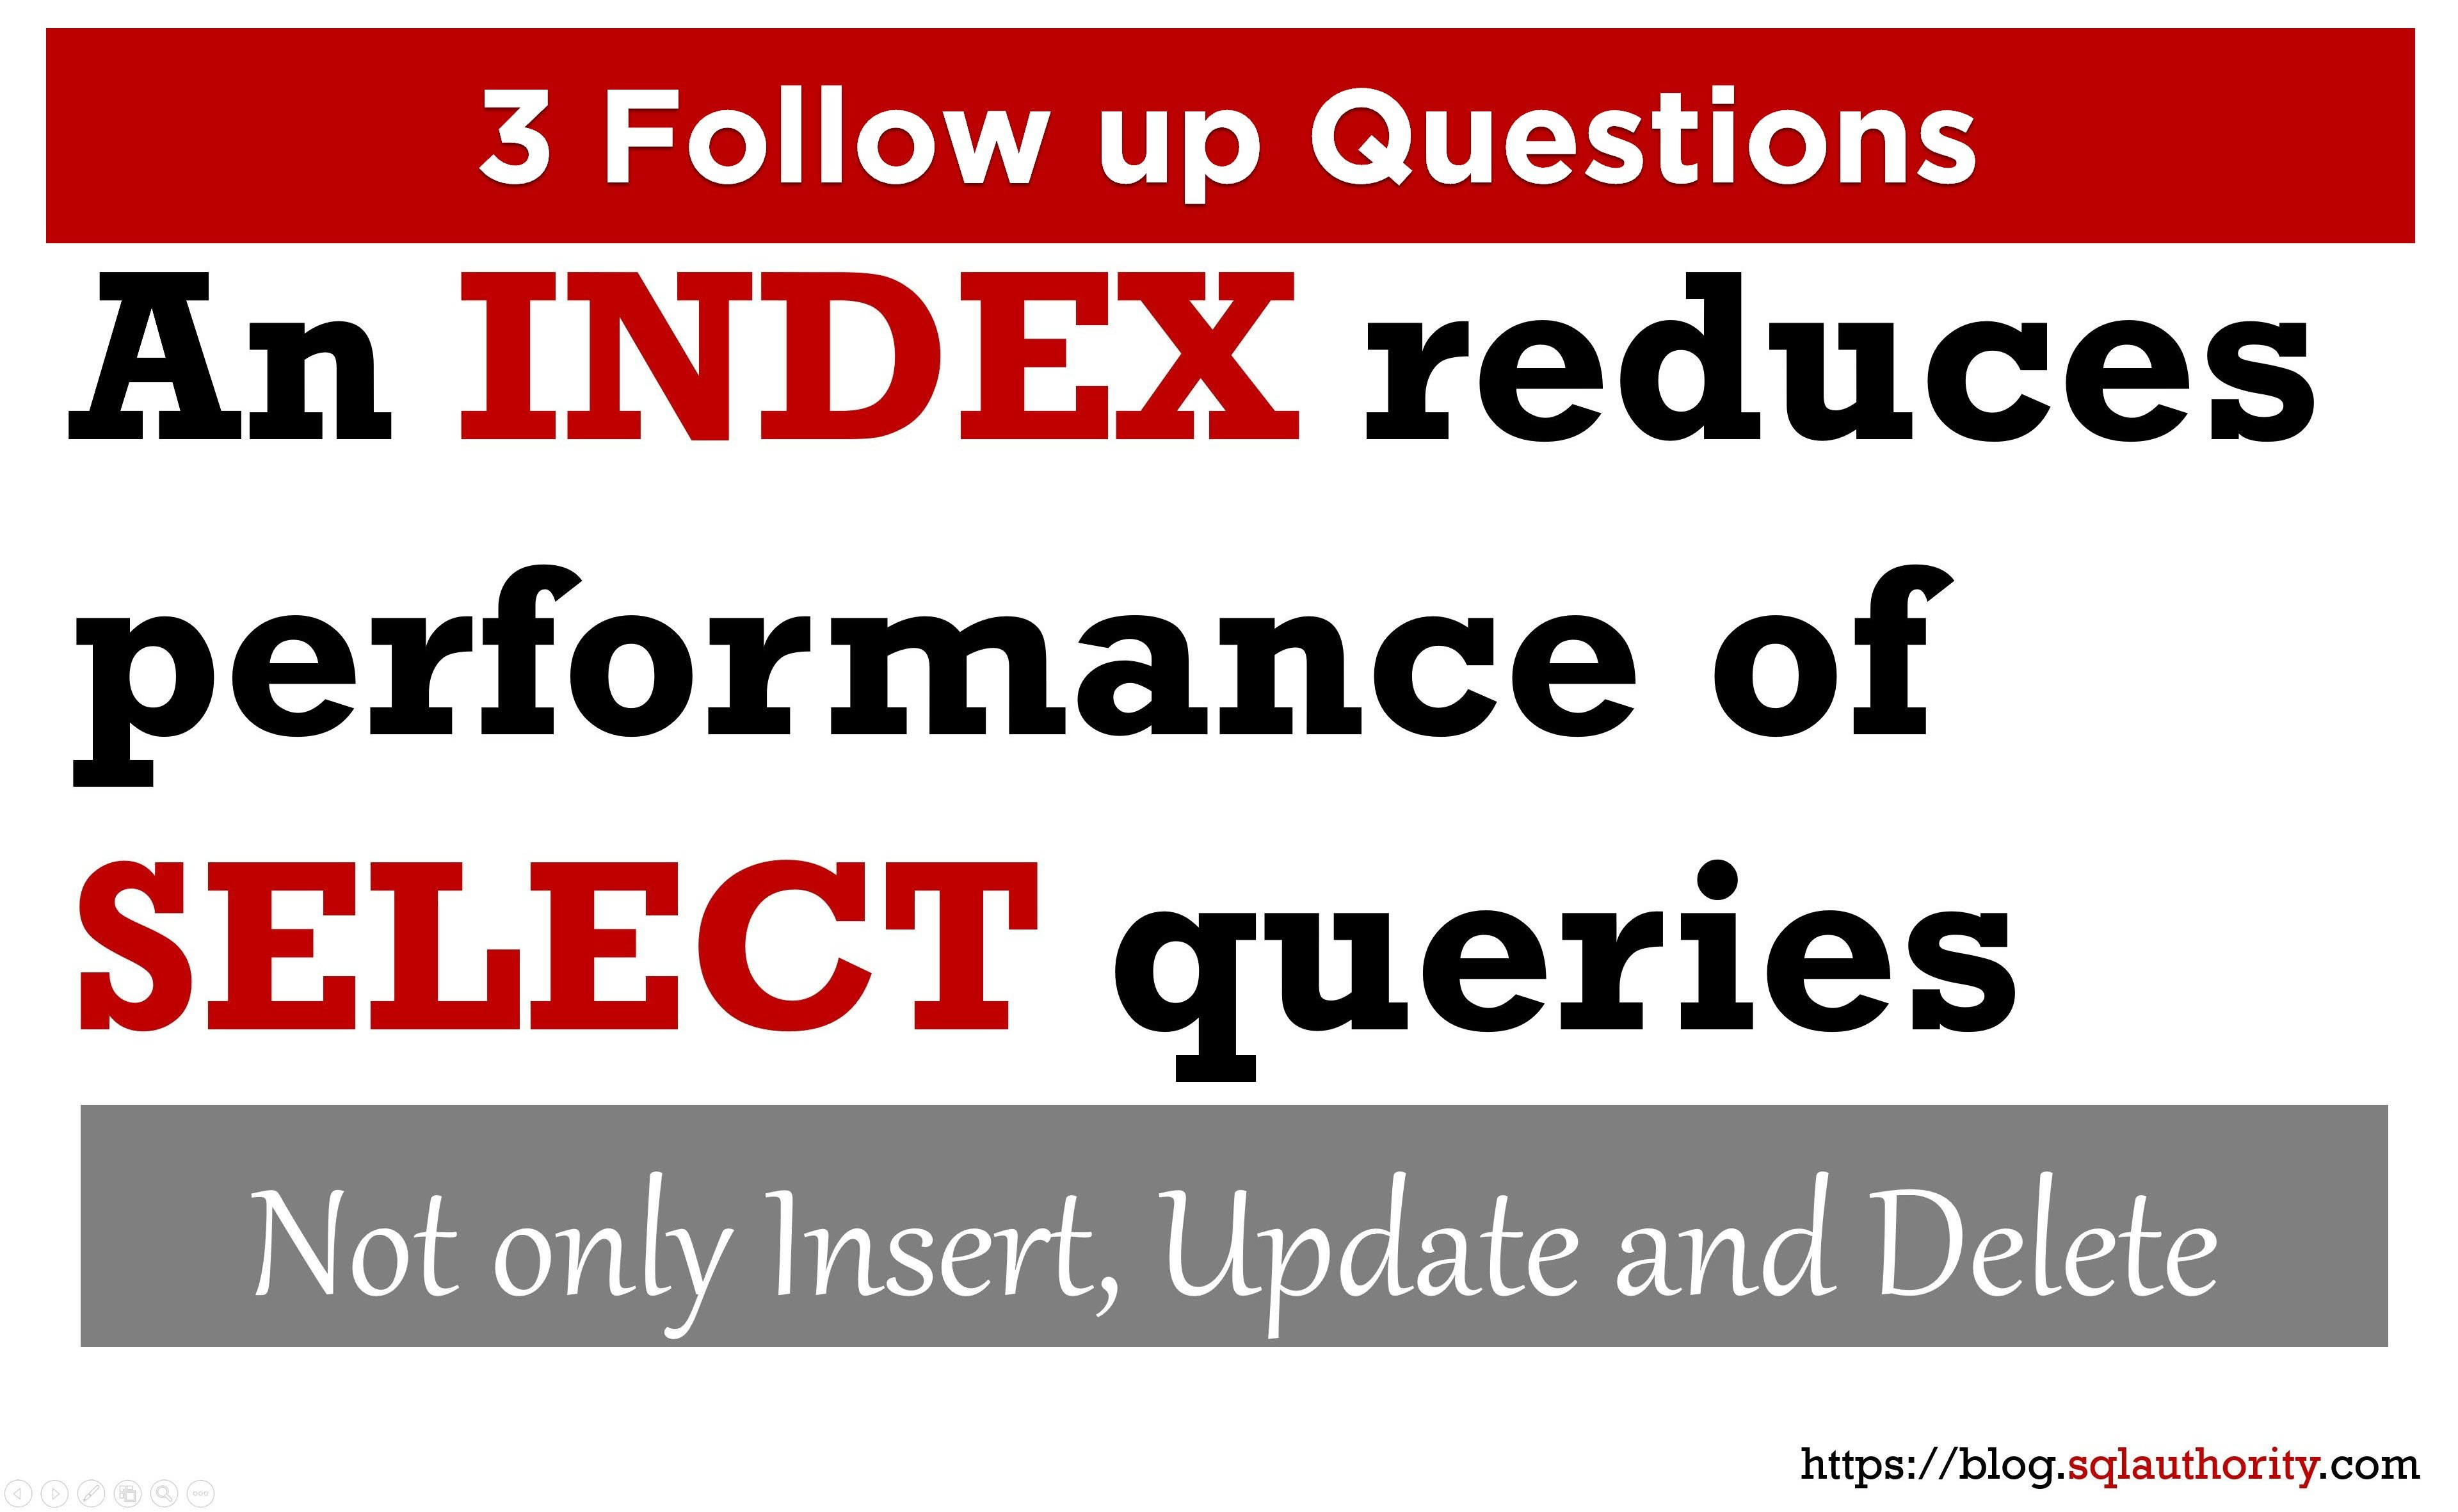 SQL SERVER - 3 Questions: An Index Reduces Performance of SELECT